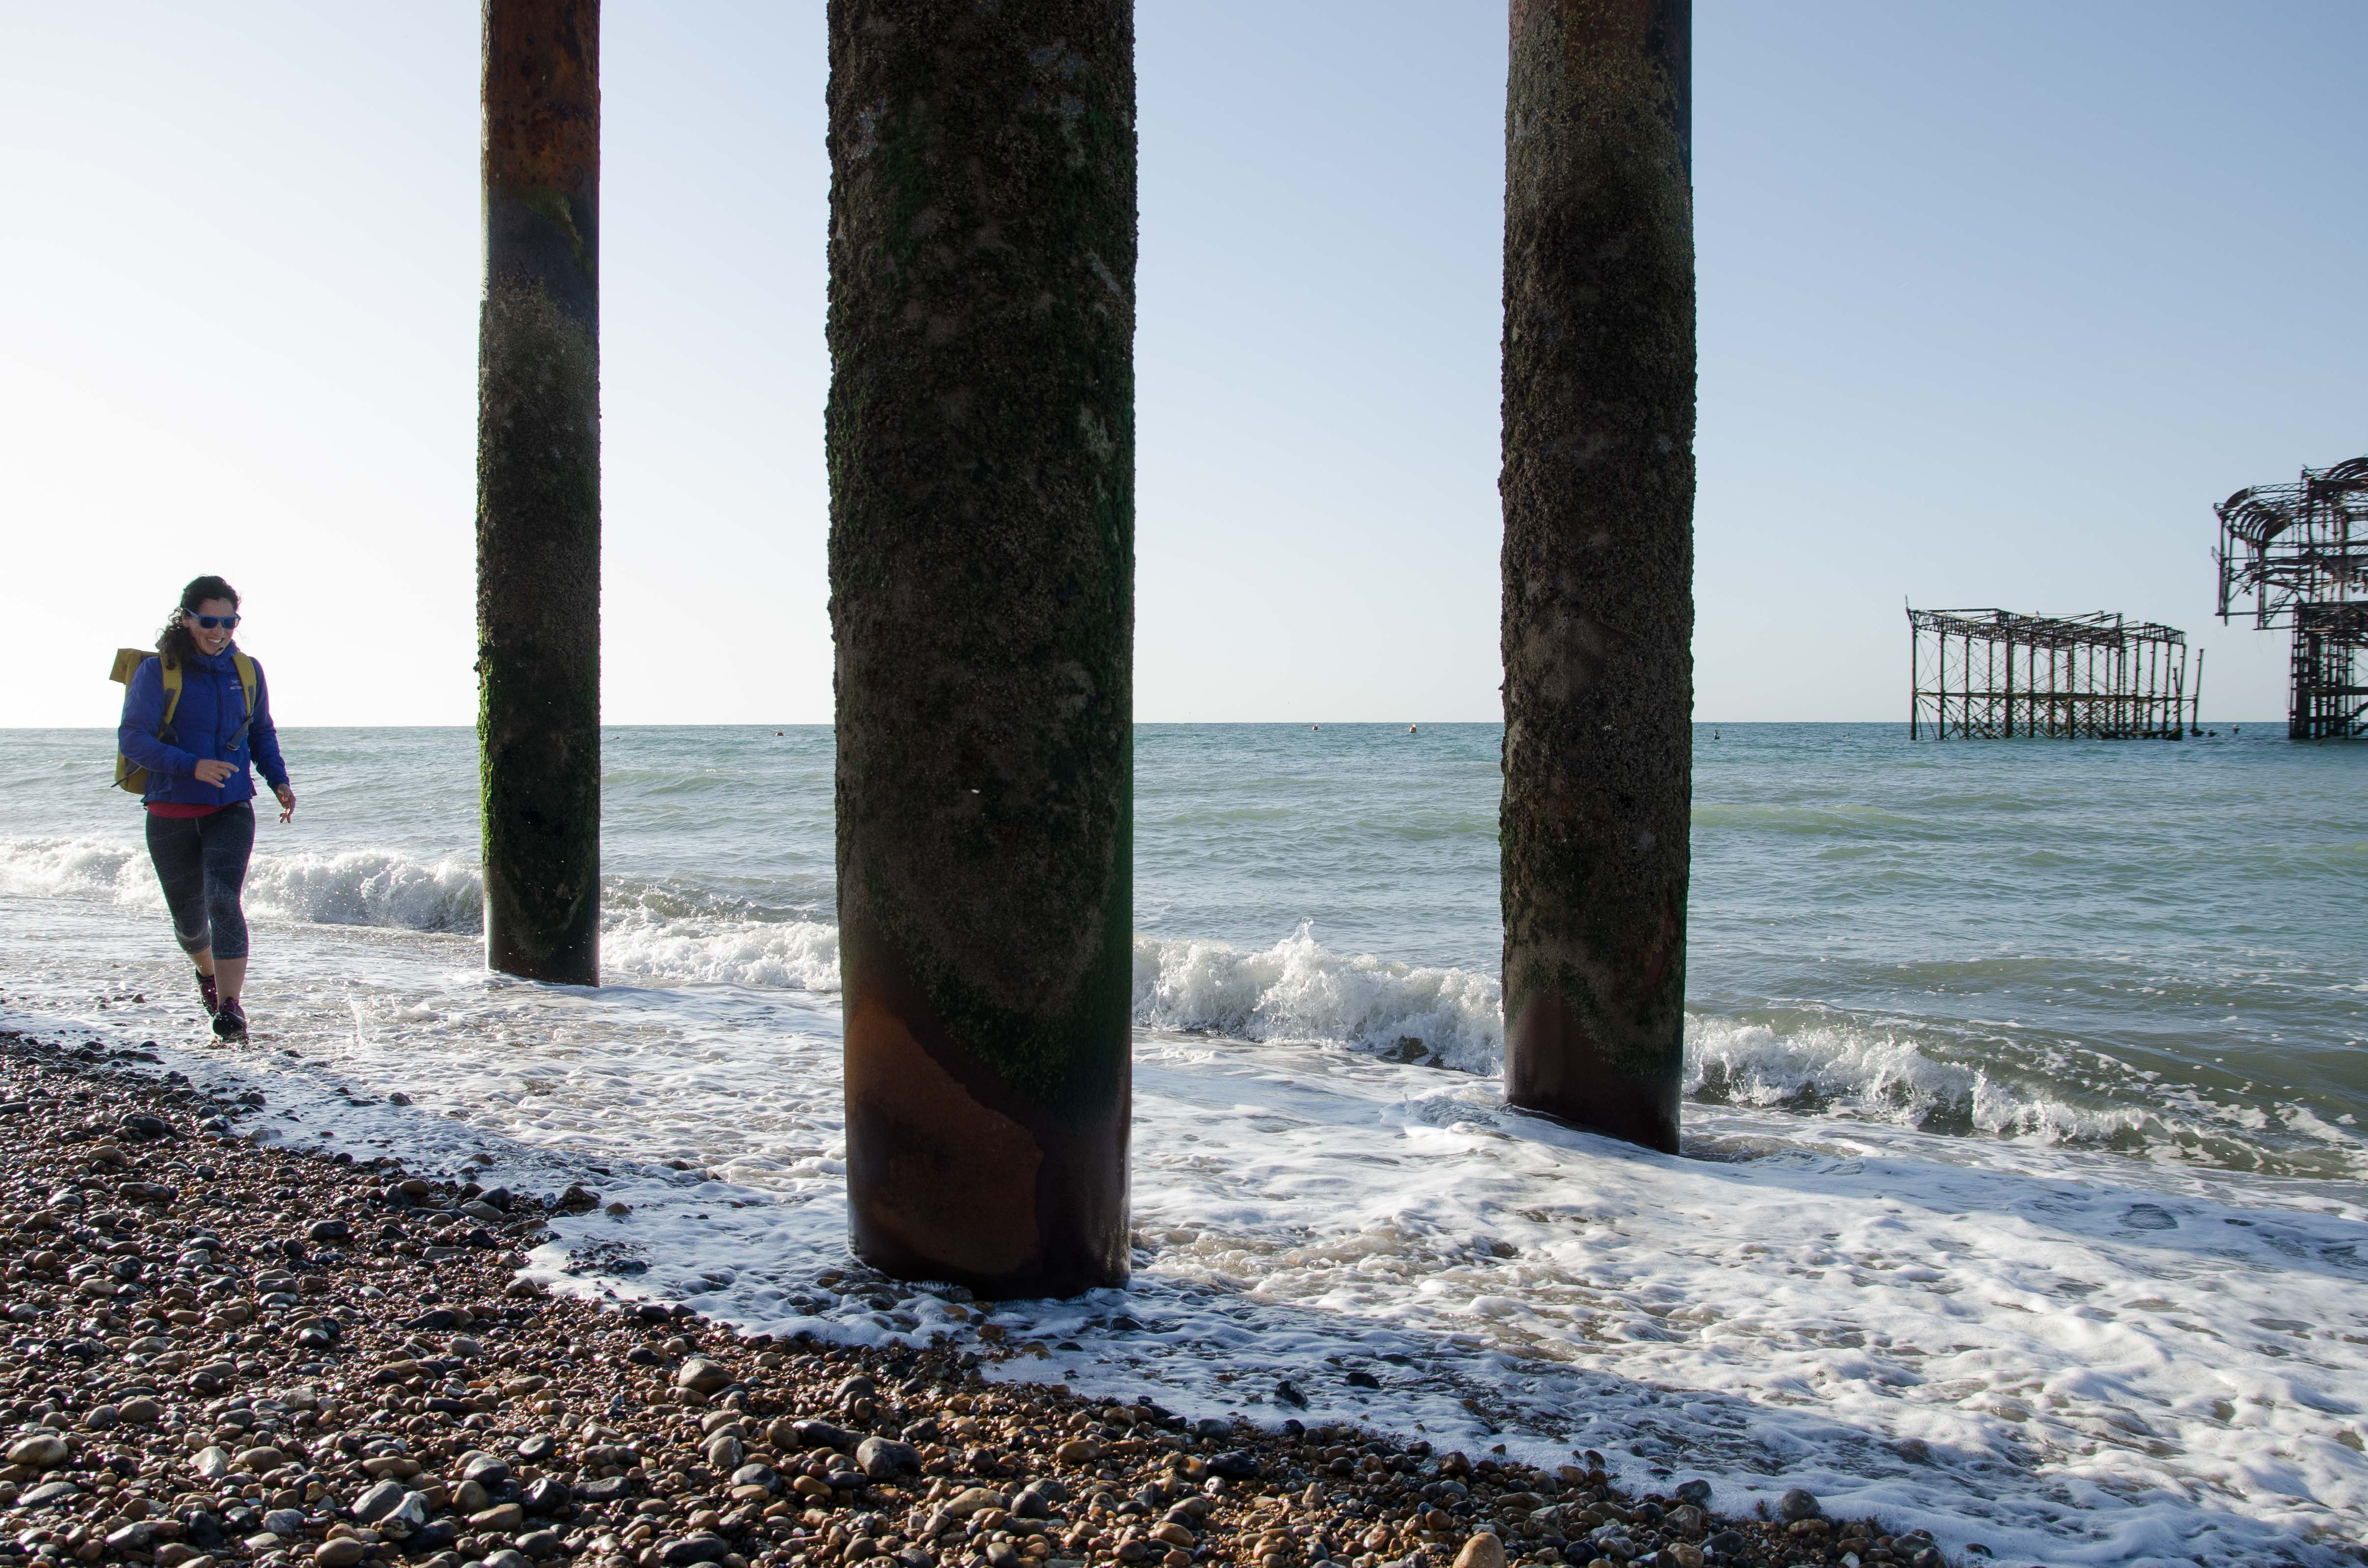 The West Pier II